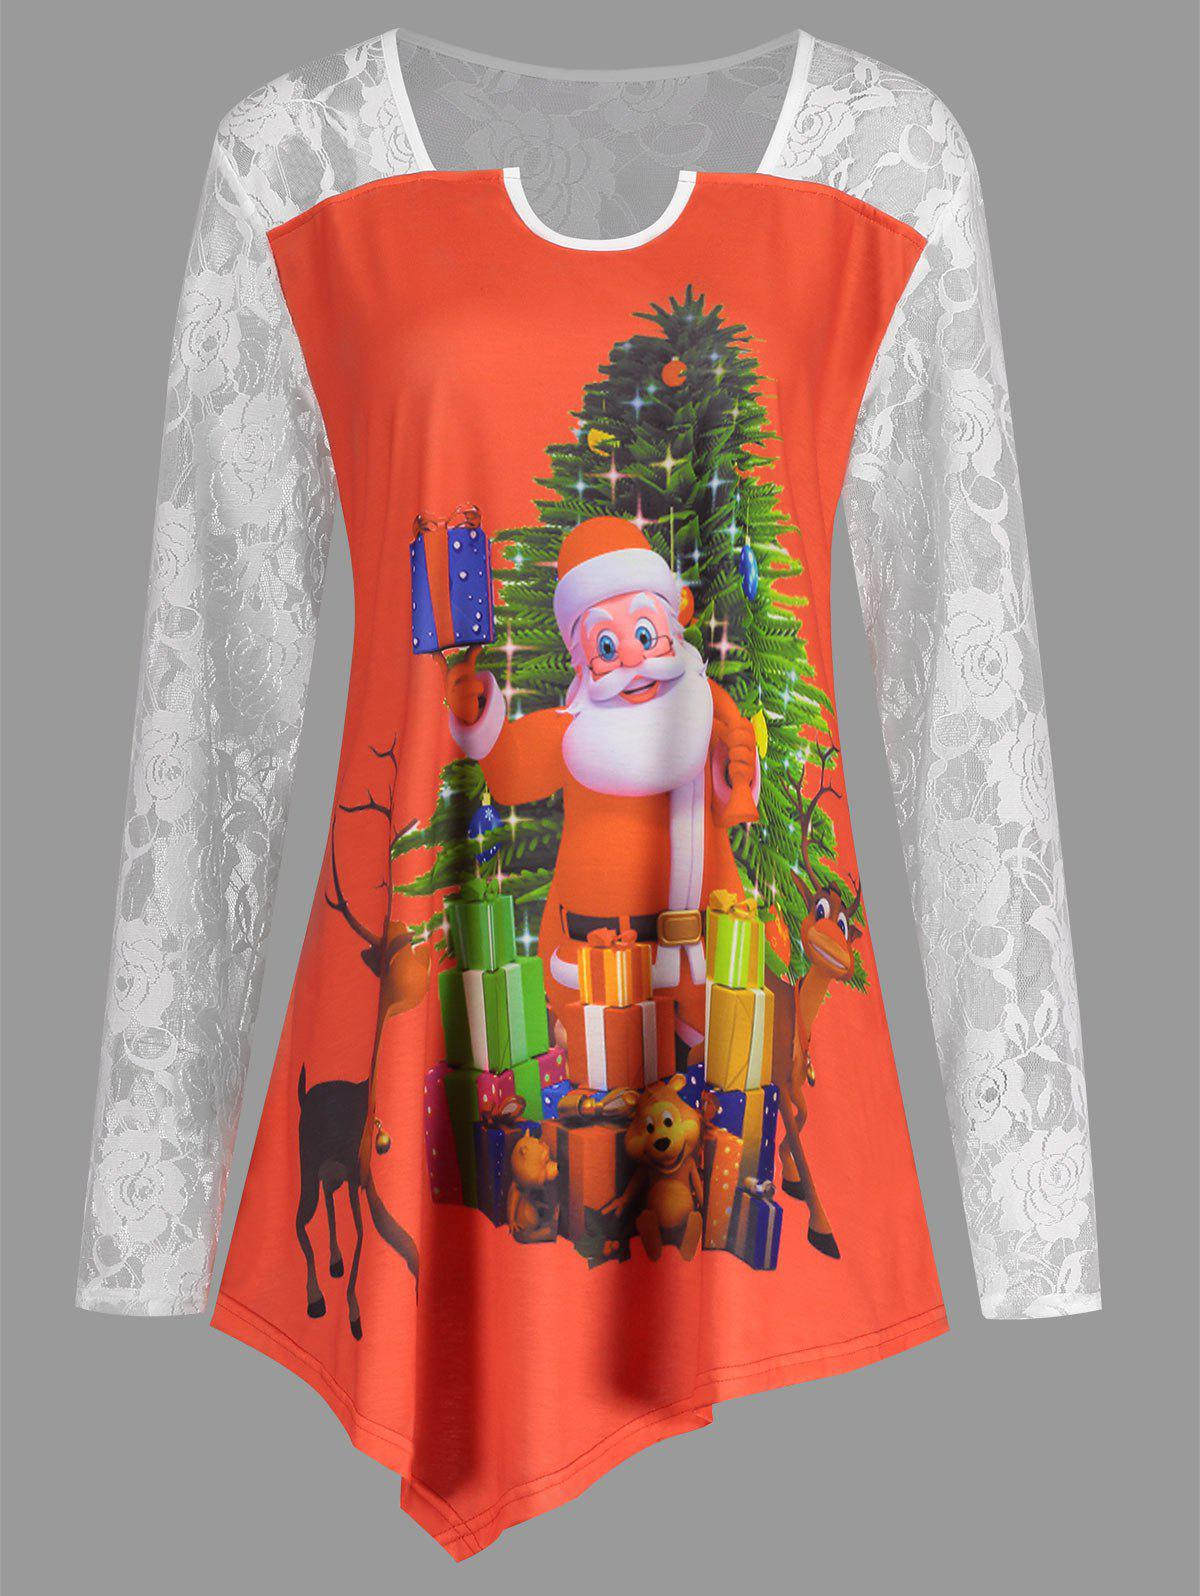 Christmas Santa Claus Plus Size Lace Yoke T-shirtWOMEN<br><br>Size: 4XL; Color: RED; Material: Cotton,Polyester; Shirt Length: Long; Sleeve Length: Full; Collar: Square Neck; Style: Fashion; Season: Fall,Spring; Embellishment: Lace; Pattern Type: Animal,Print; Weight: 0.2300kg; Package Contents: 1 x T-shirt;